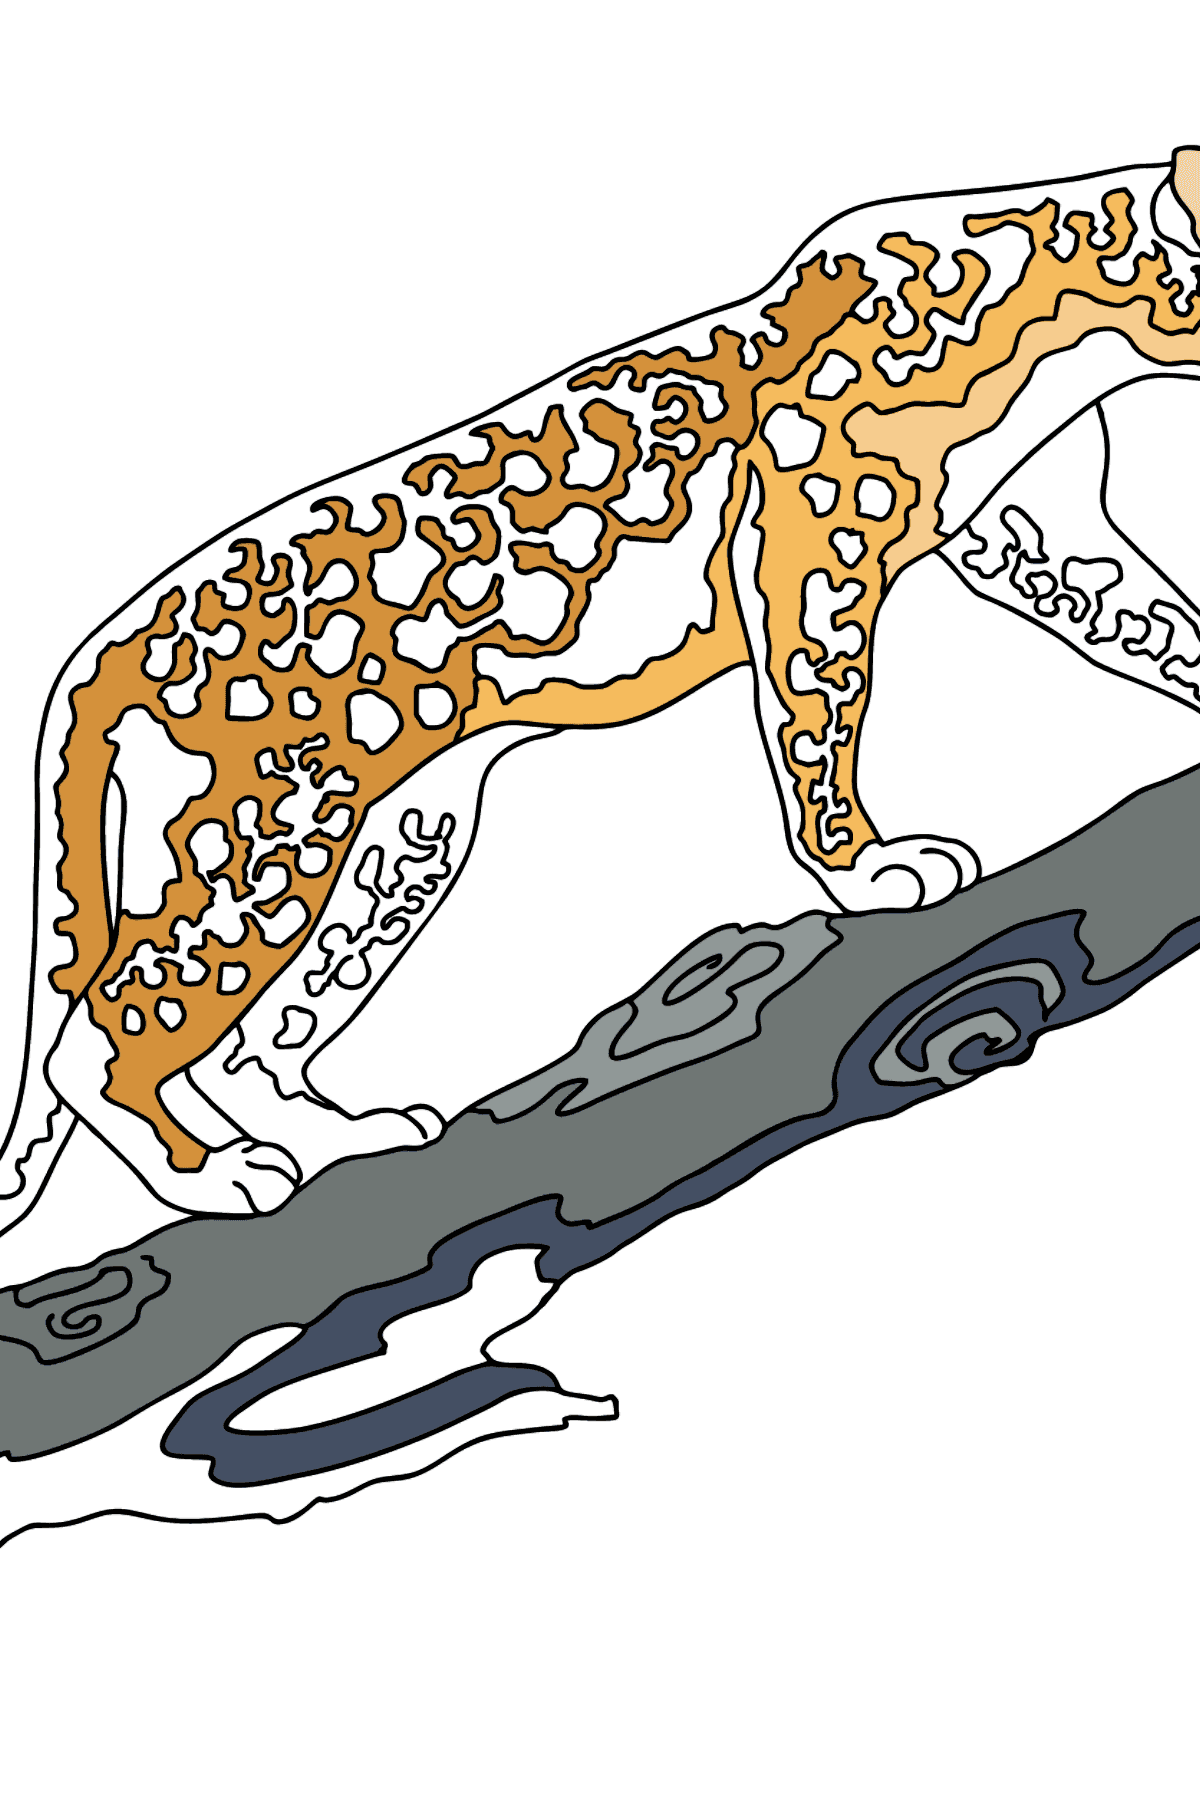 Coloring Page - A Leopard is on a Hunt - Coloring Pages for Kids